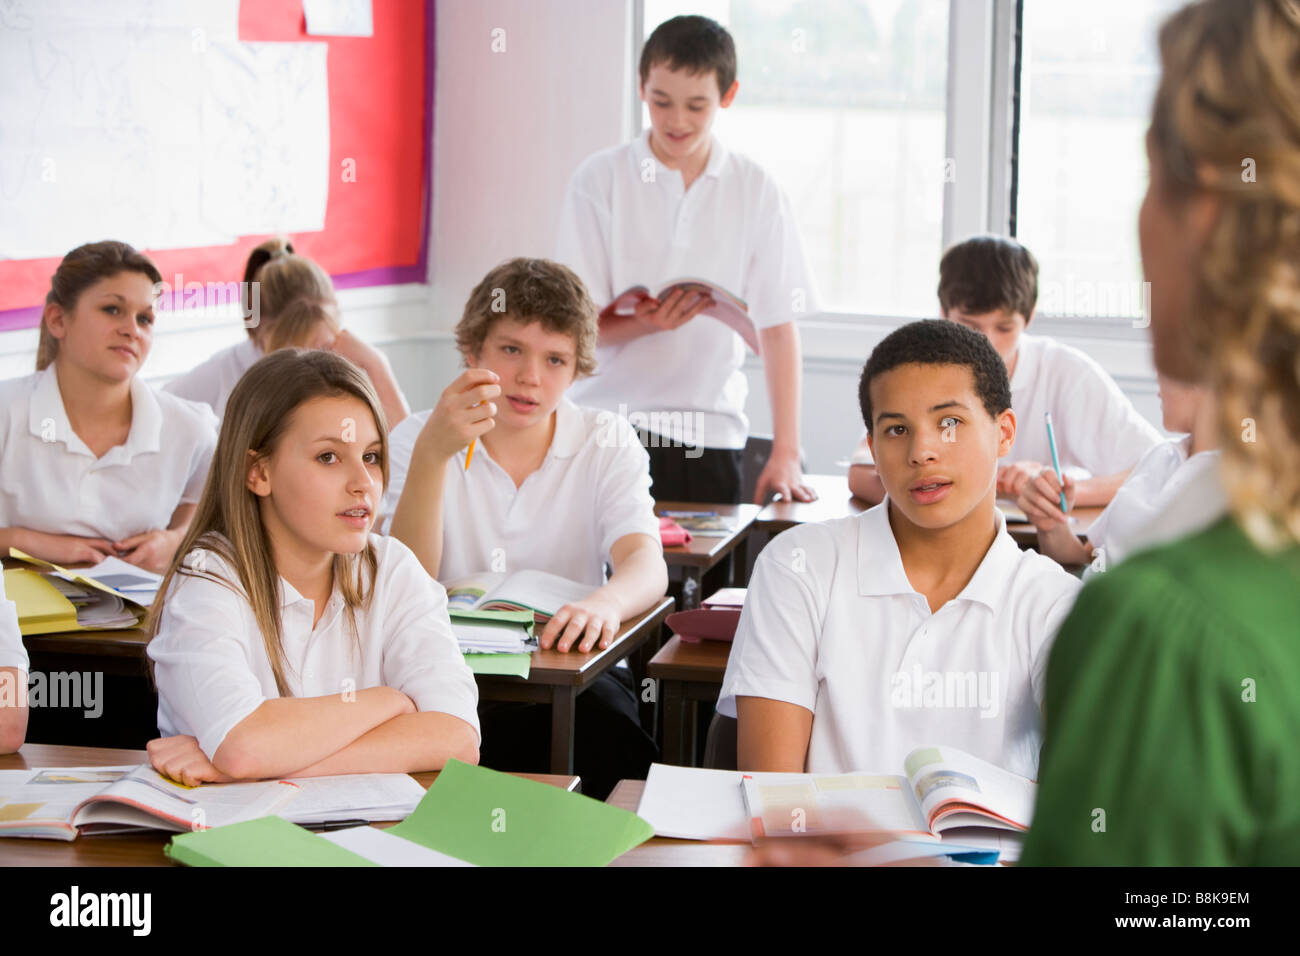 Secondary school student reading out loud in classroom - Stock Image